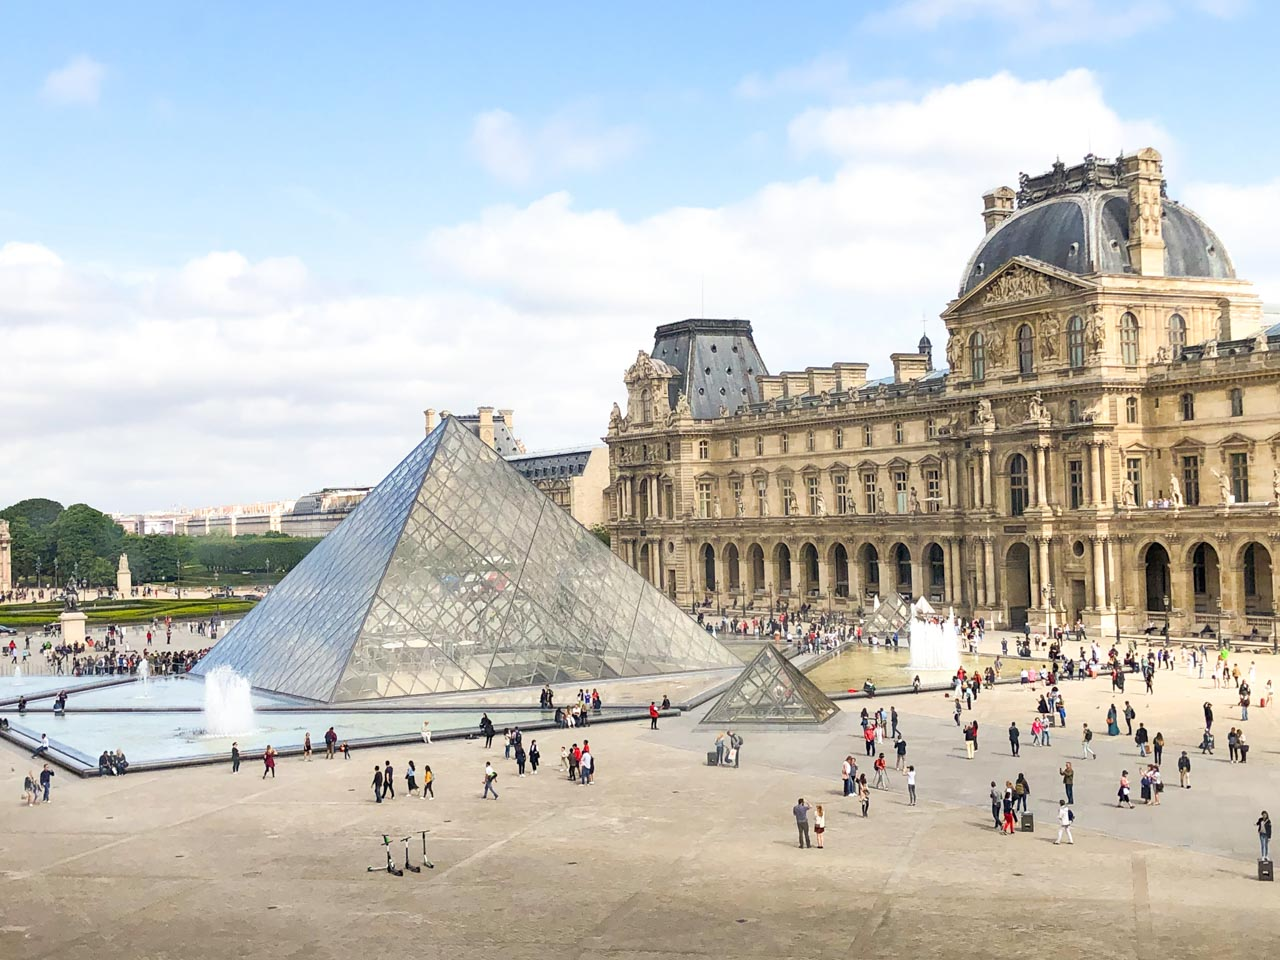 People walking around the Louvre Pyramid seen from the inside of the museum, with the arcades housing Le Café Marly visible on the right side of the photo